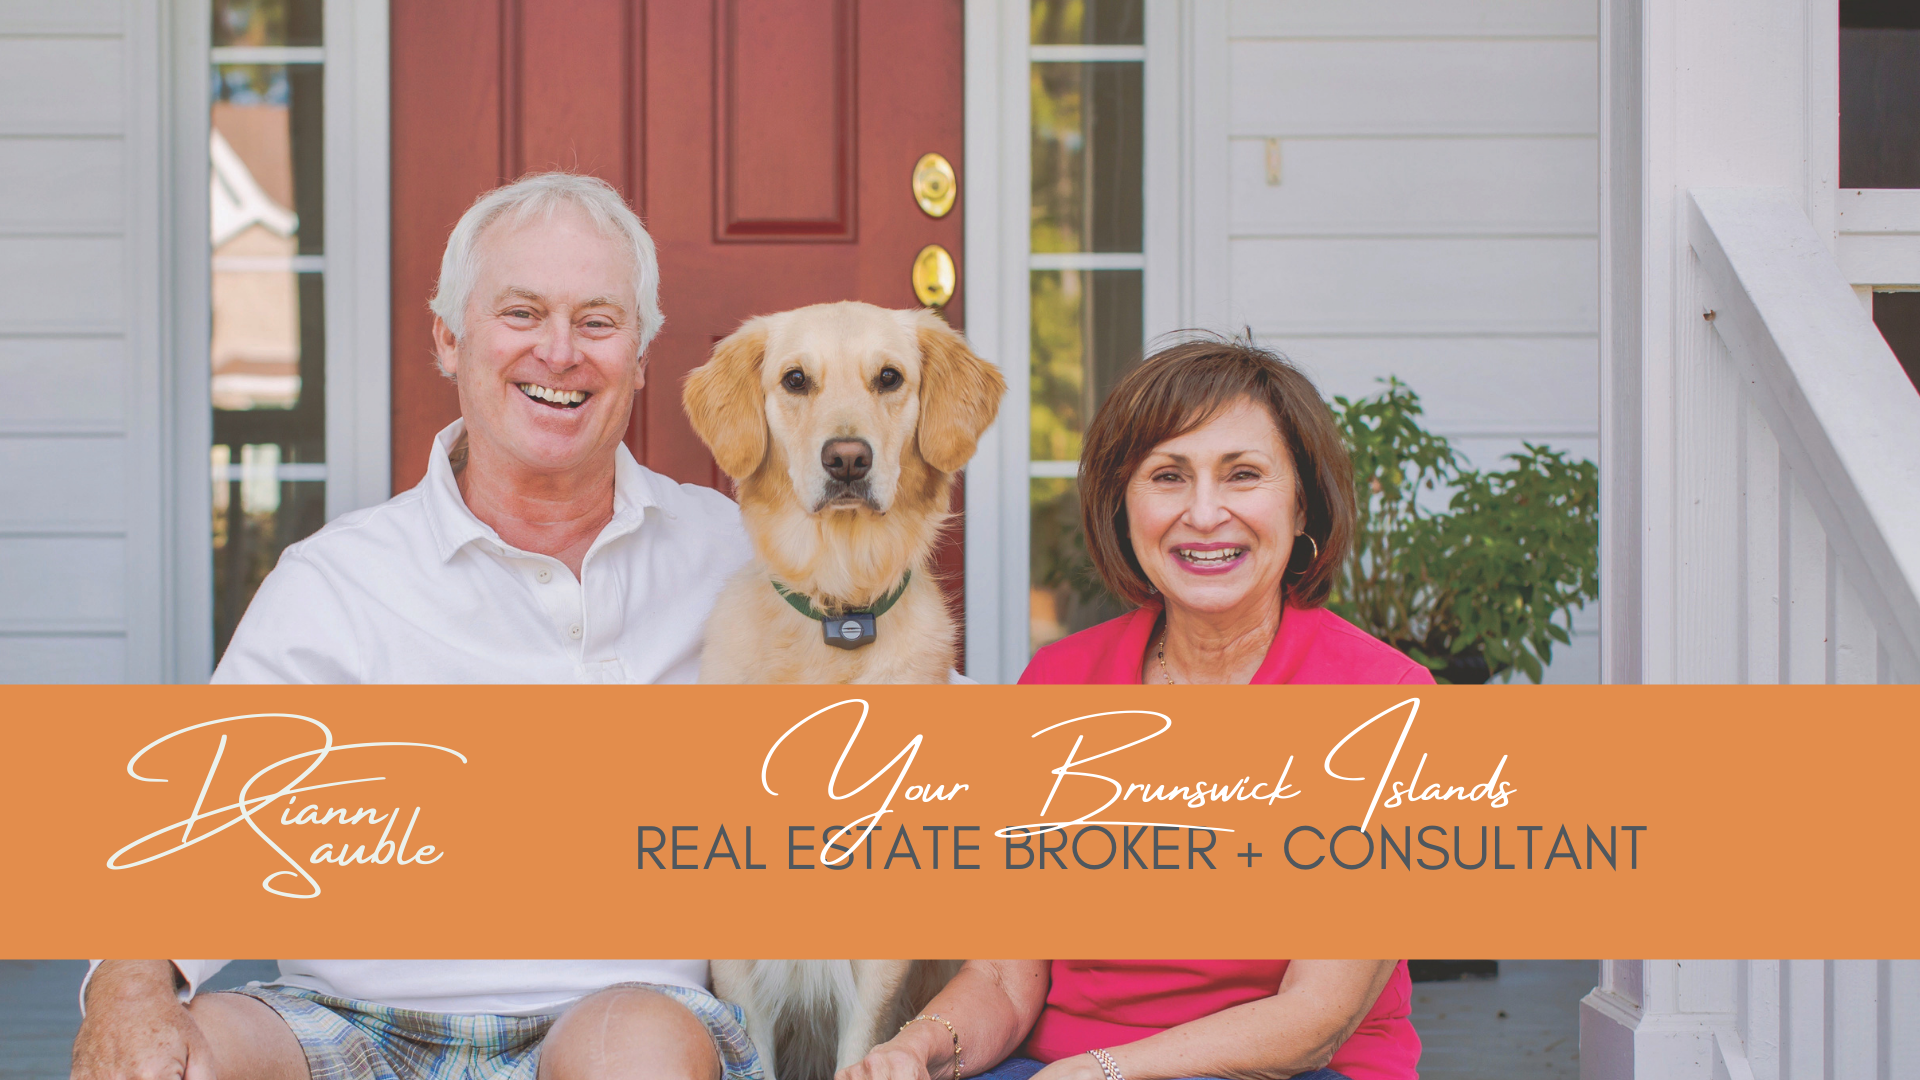 Diann Sauble Real Estate Broker and Consultant